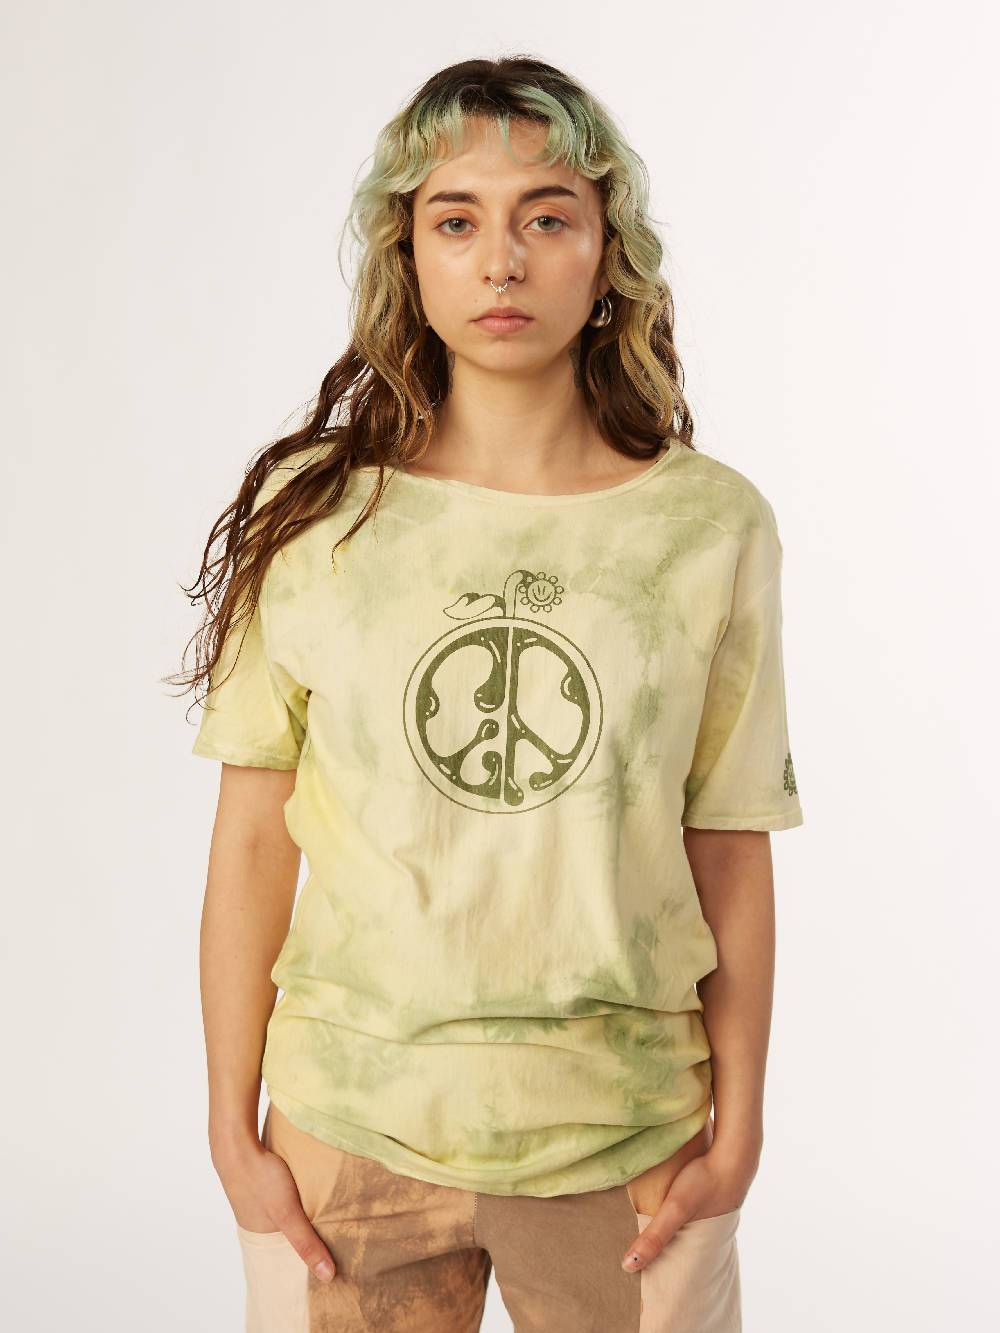 E A Williams Naturally Dyed Chlorophylln T-shirt